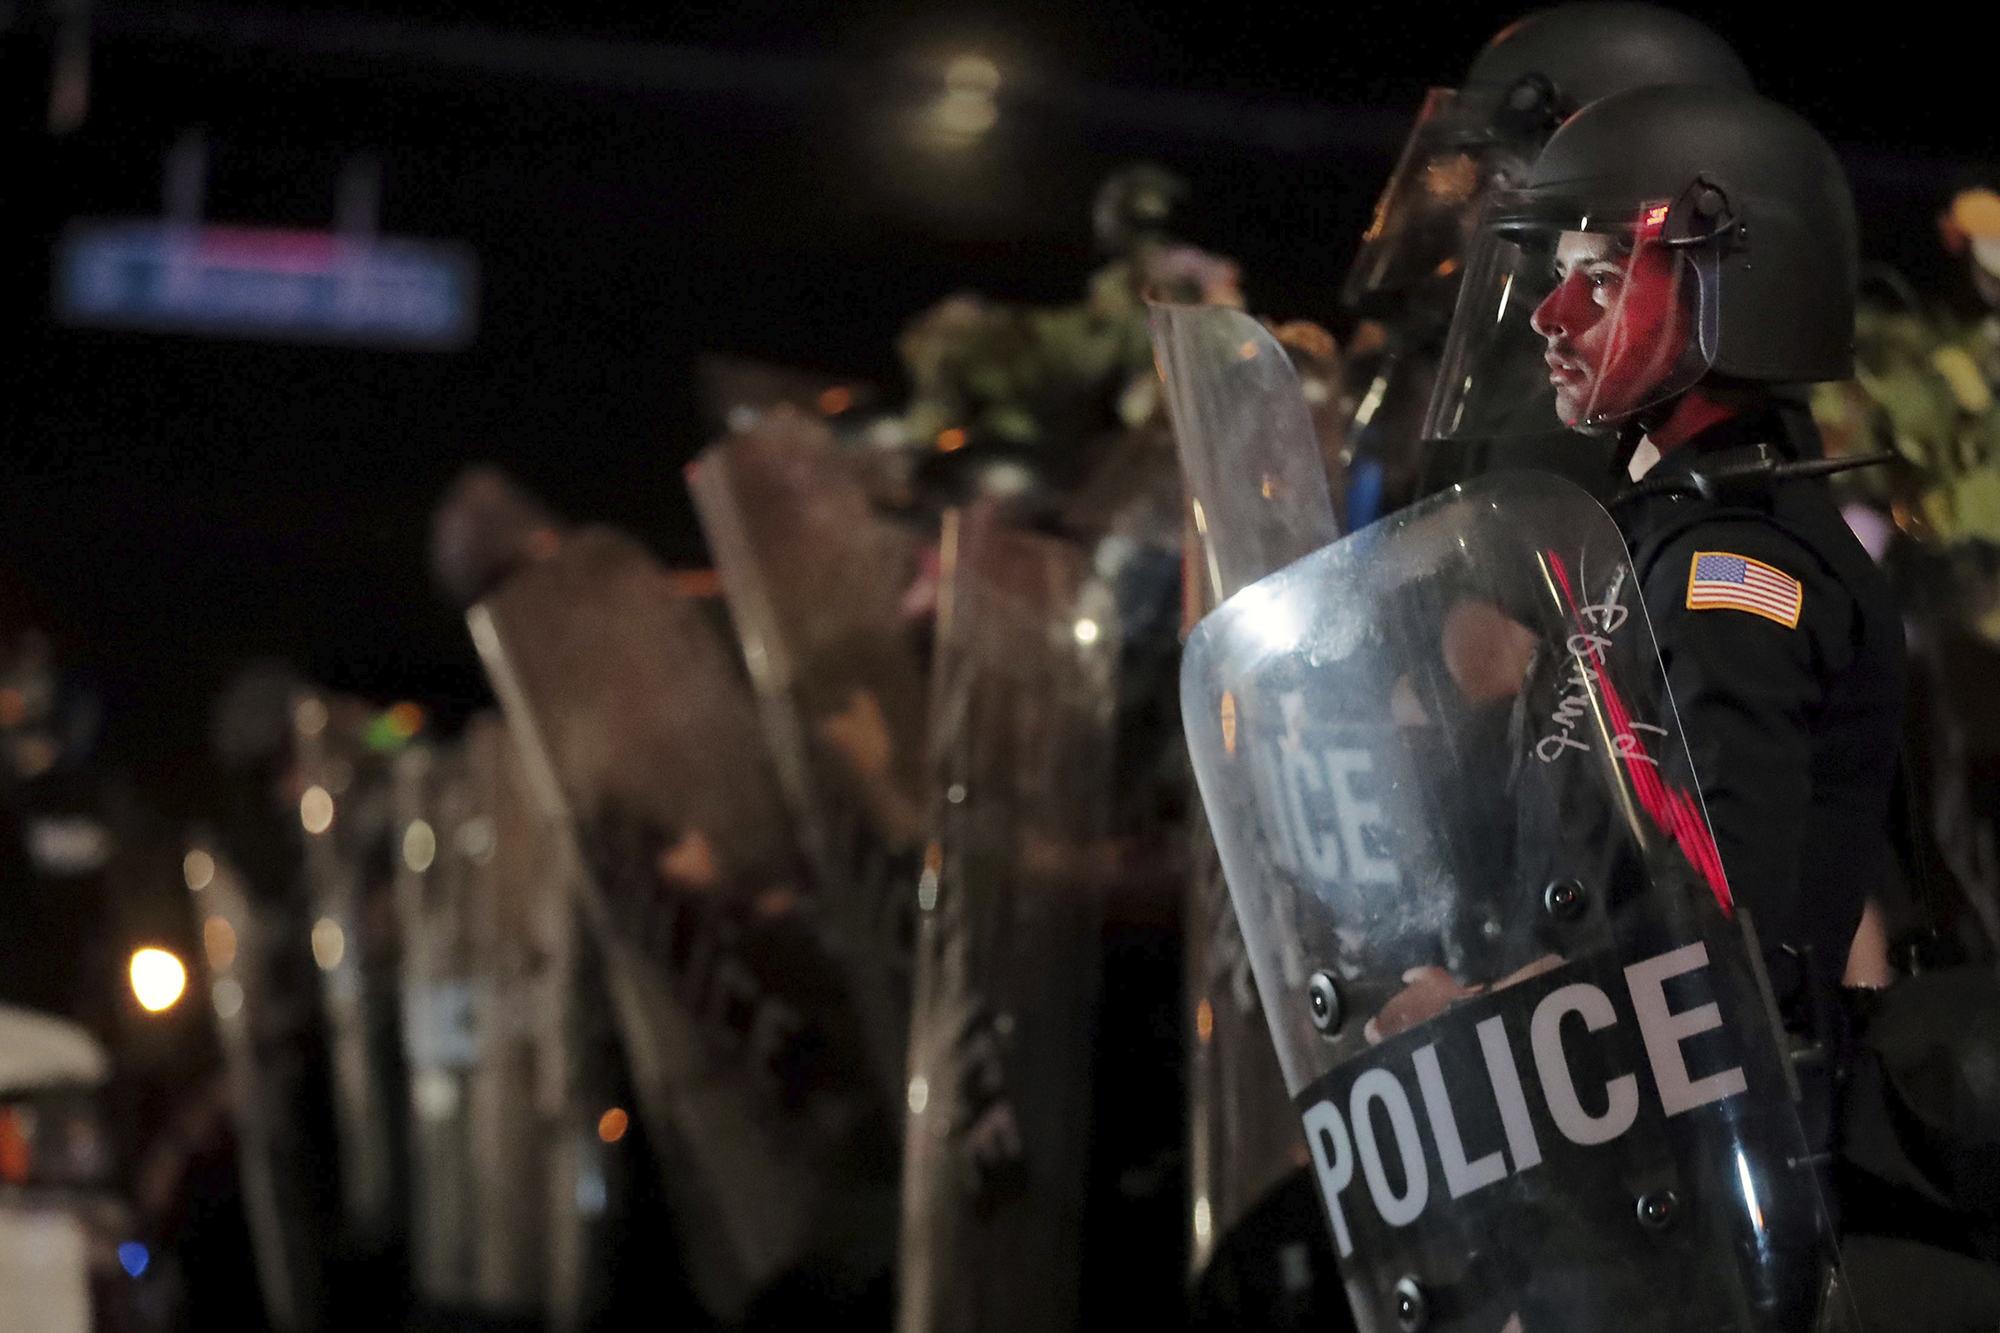 Police Precinct Set on Fire in Minneapolis amid George Floyd Protests